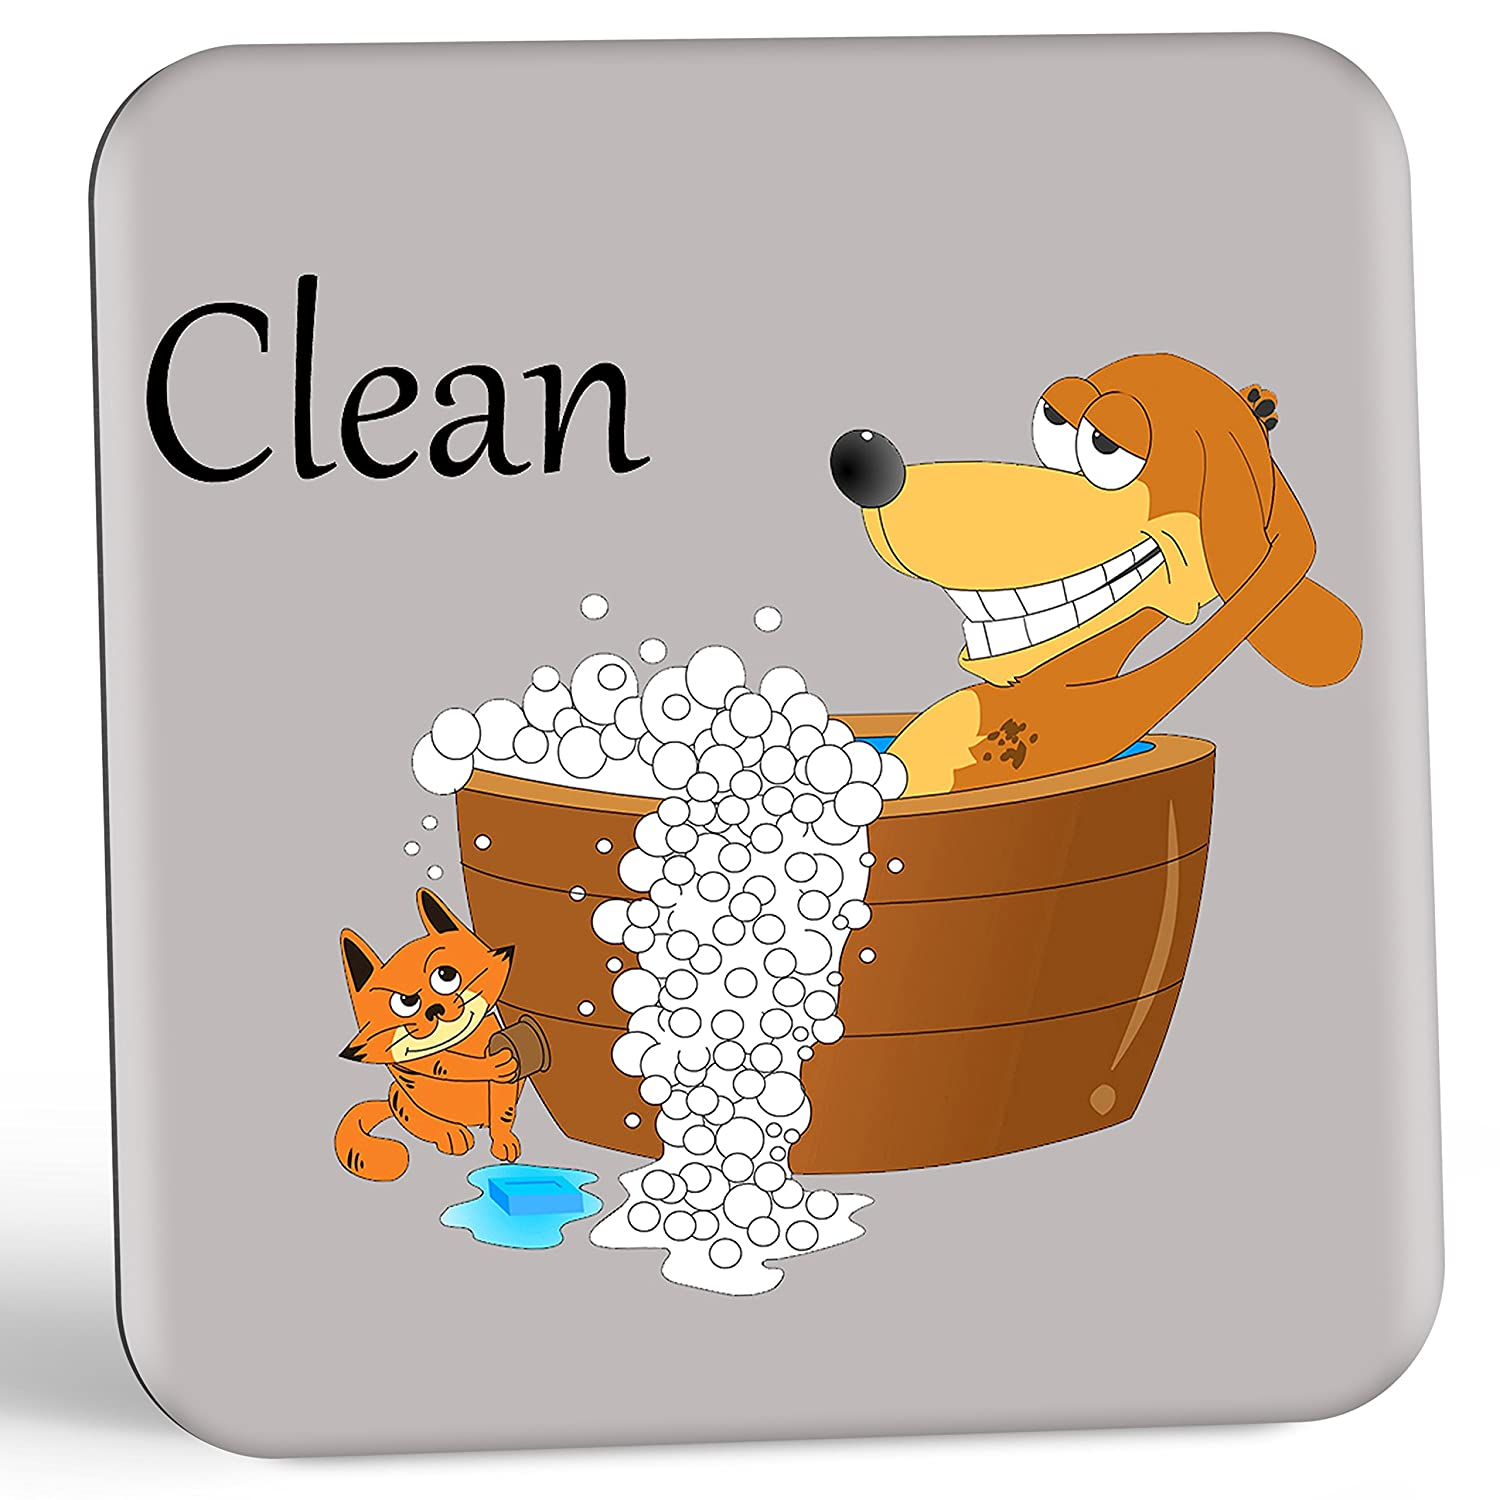 Dish Doggy Clean Dirty Dishwasher Indicator Magnet